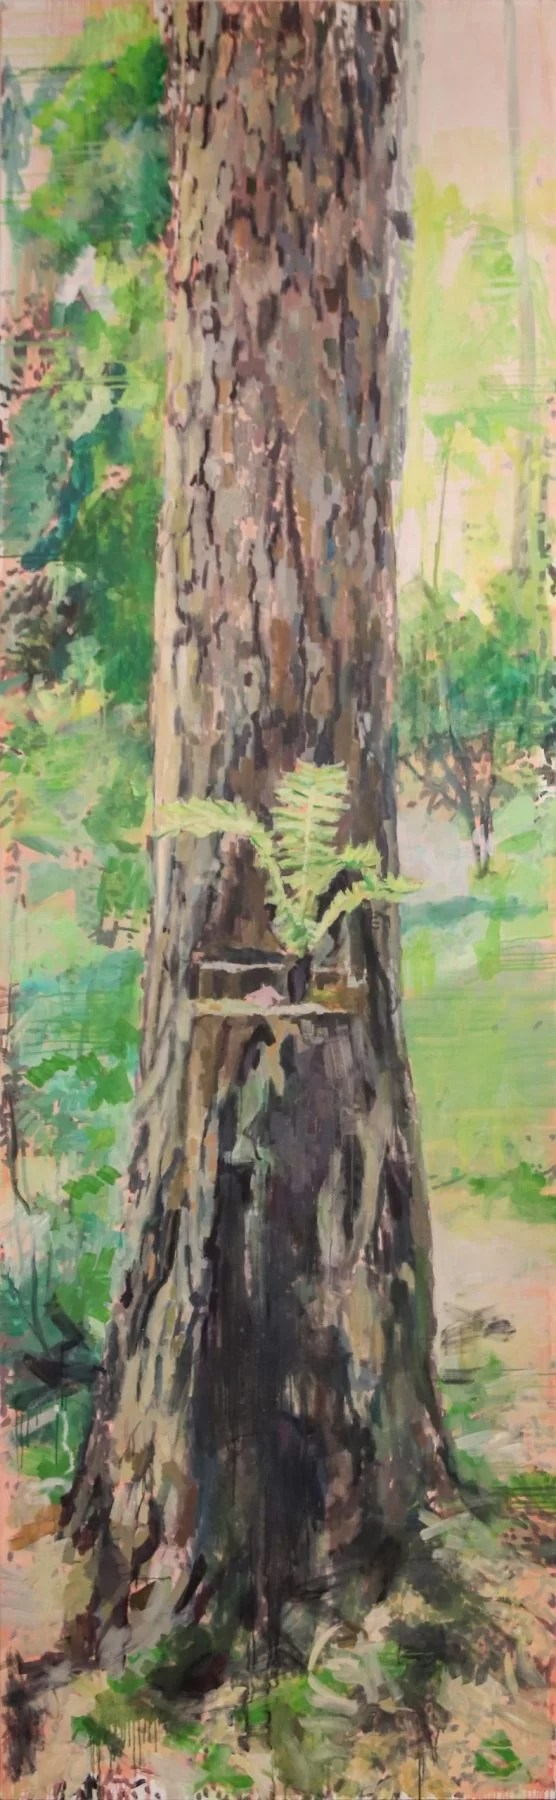 huge tree painting, fern growing out of a tree, impressionism artwork